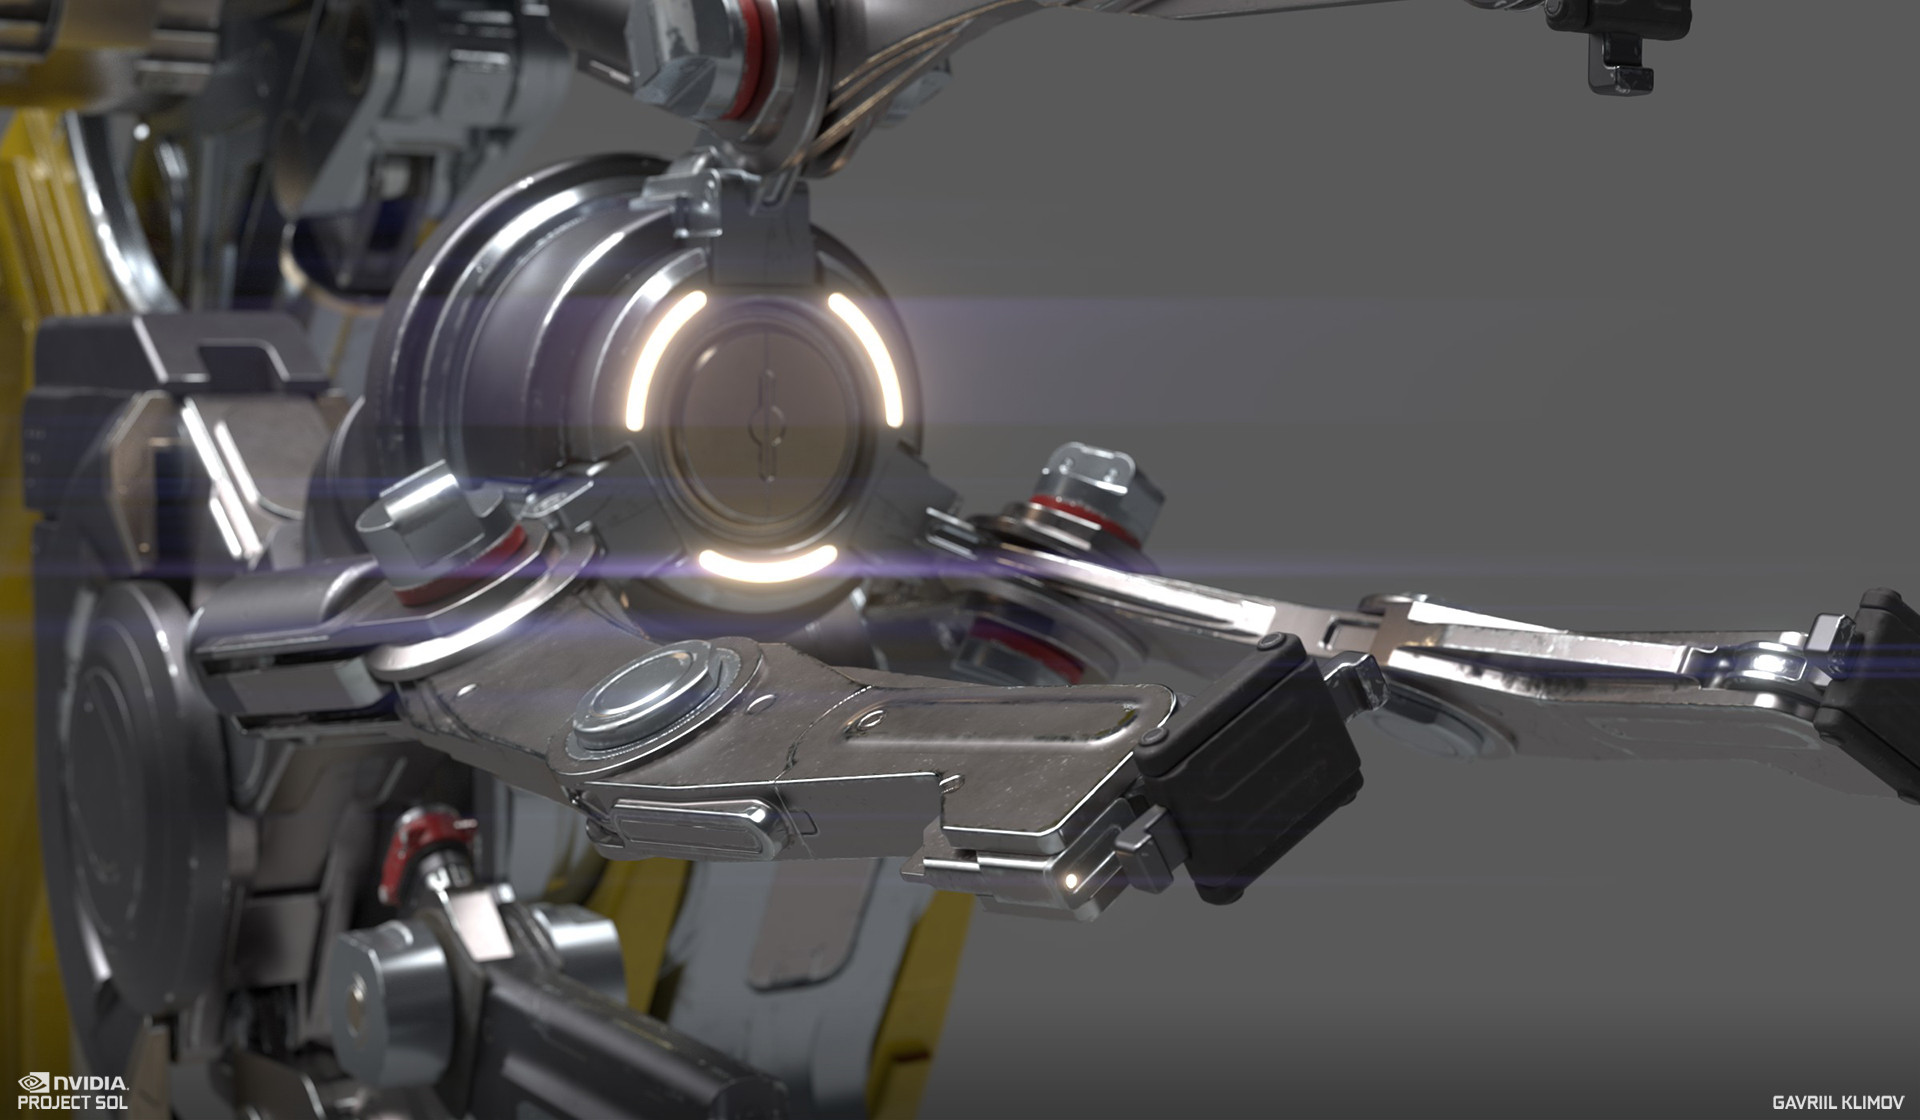 An example of the final real-time mesh of the robot arm, designed by Gregor Kopka and textured by Jacob Norris, following my vis-dev guidance